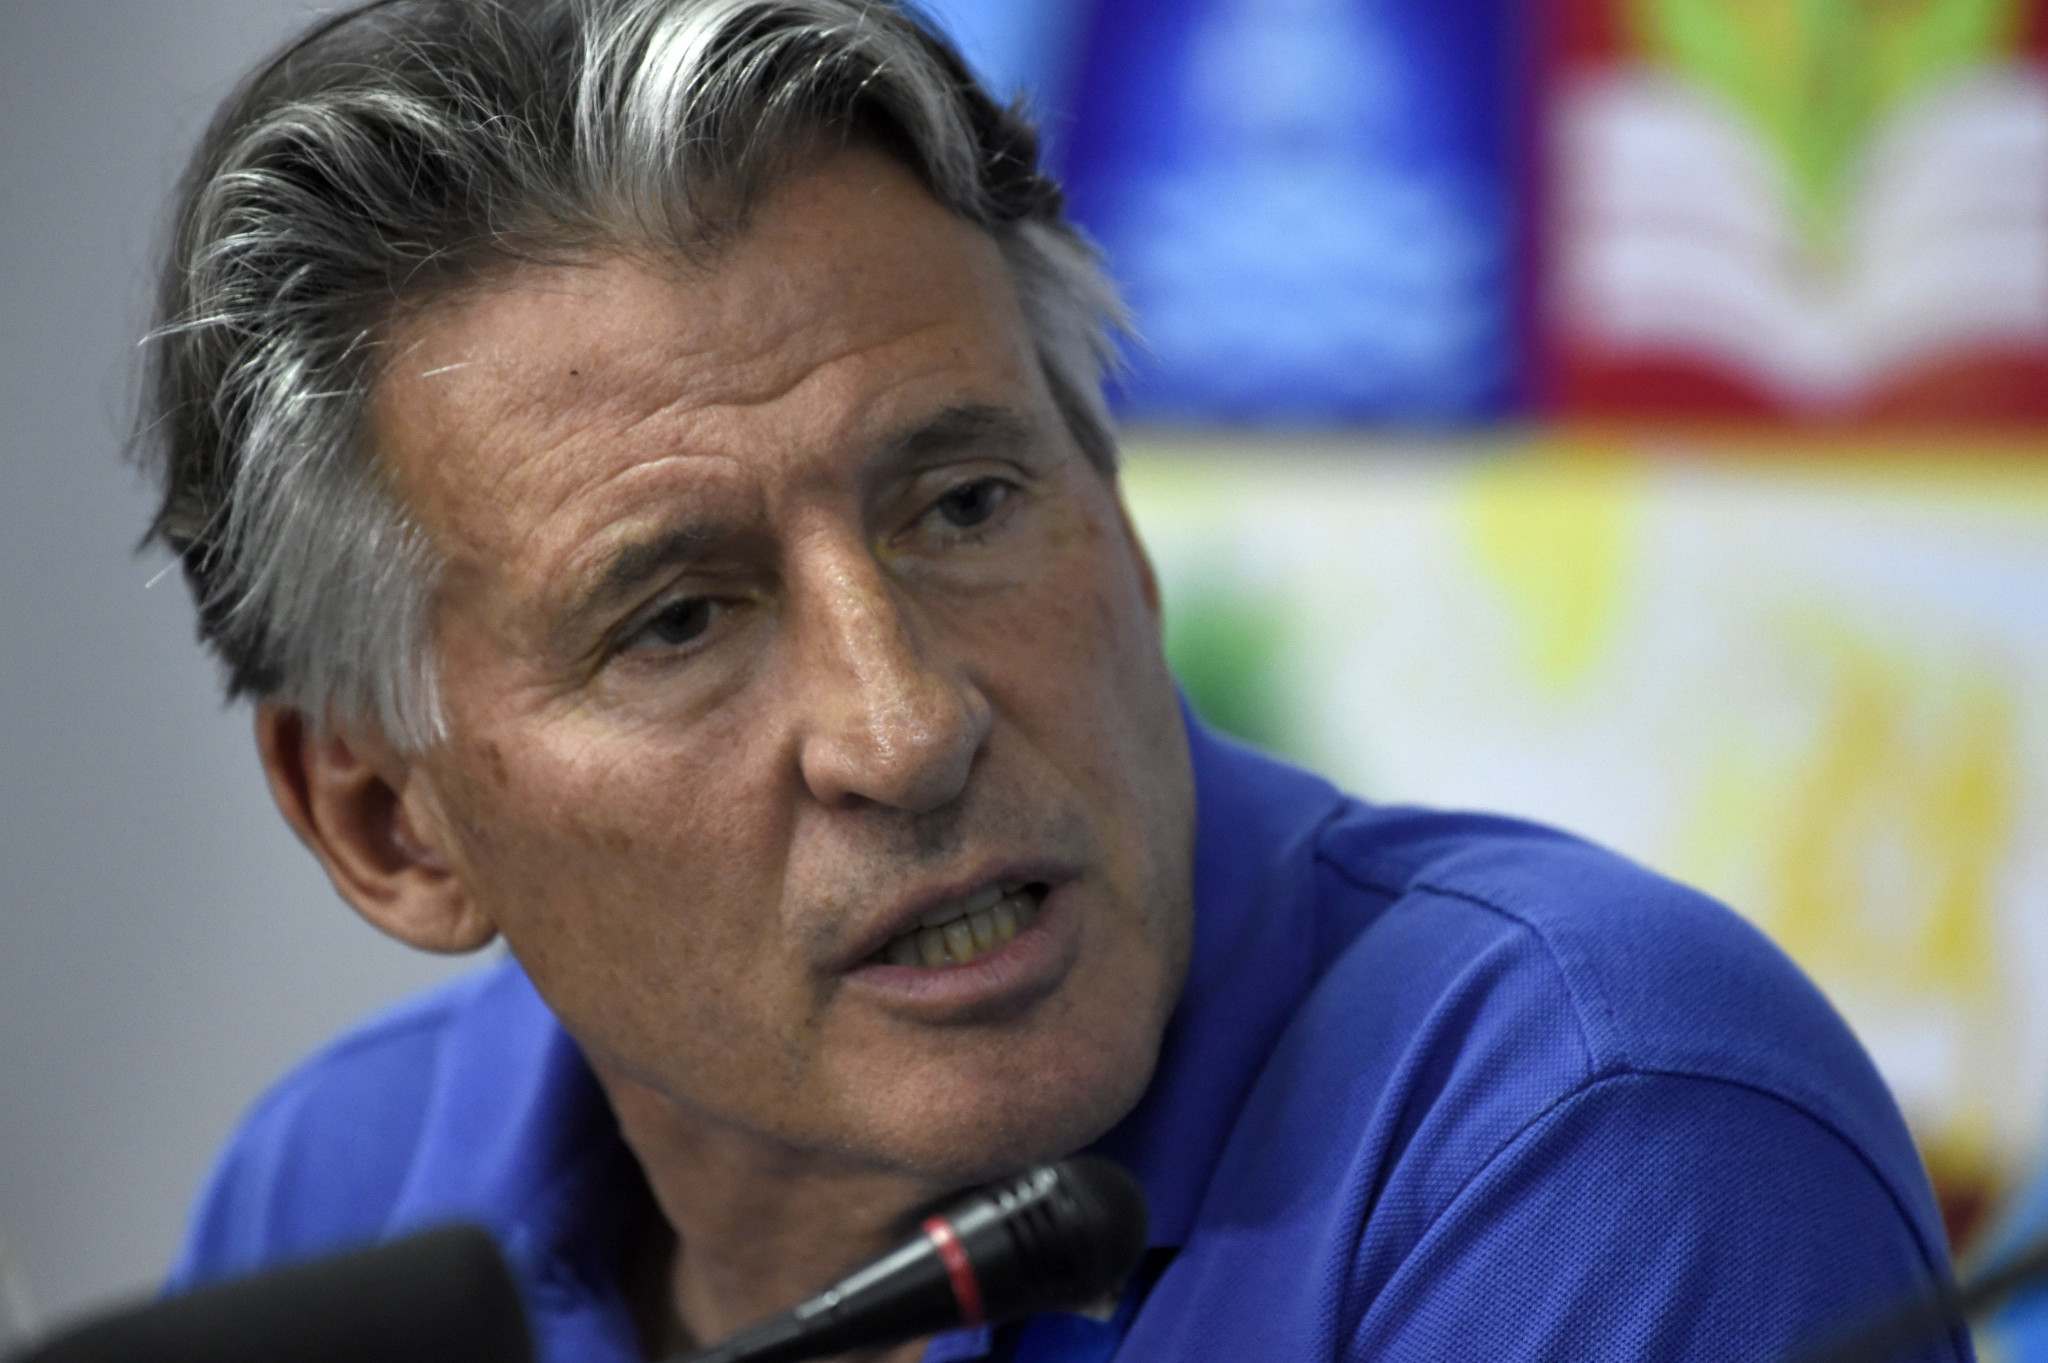 Coe hopeful all countries will attend 2019 IAAF World Championships in Doha despite diplomatic dispute